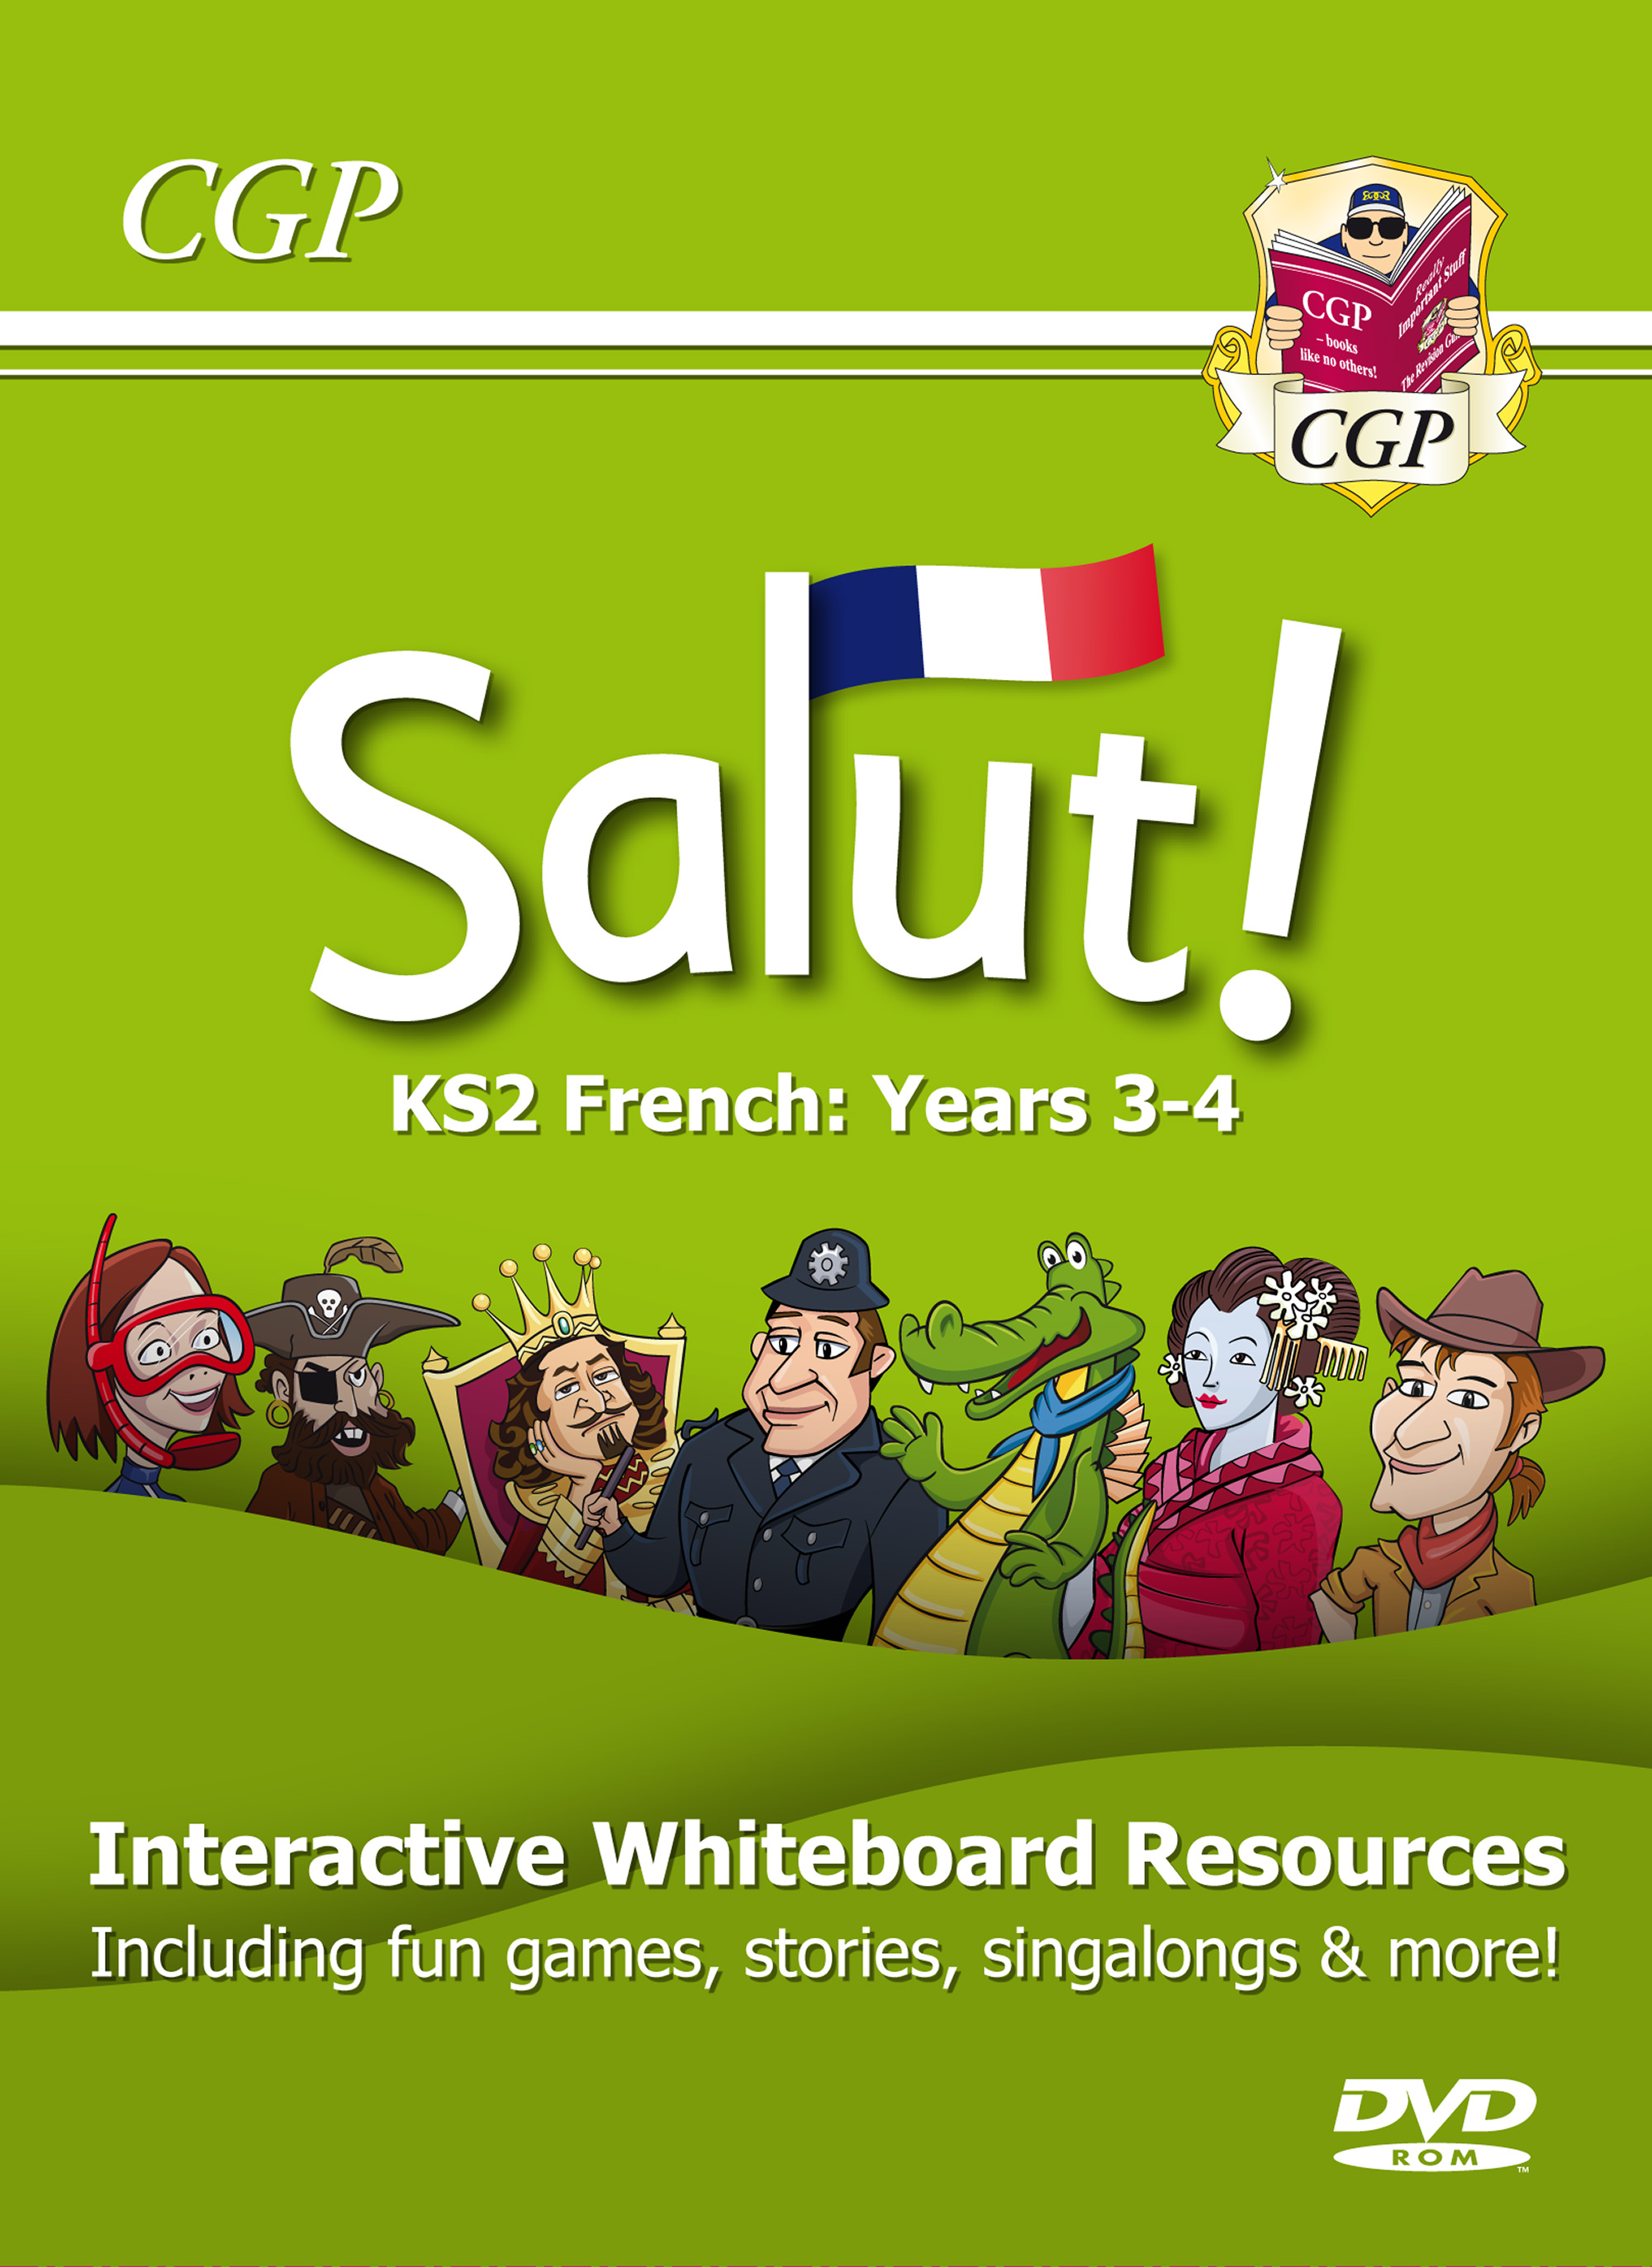 21FS4C1 - Salut! KS2 French Interactive Whiteboard Resources - Years 3-4 (DVD-ROM, 1-Year licence)